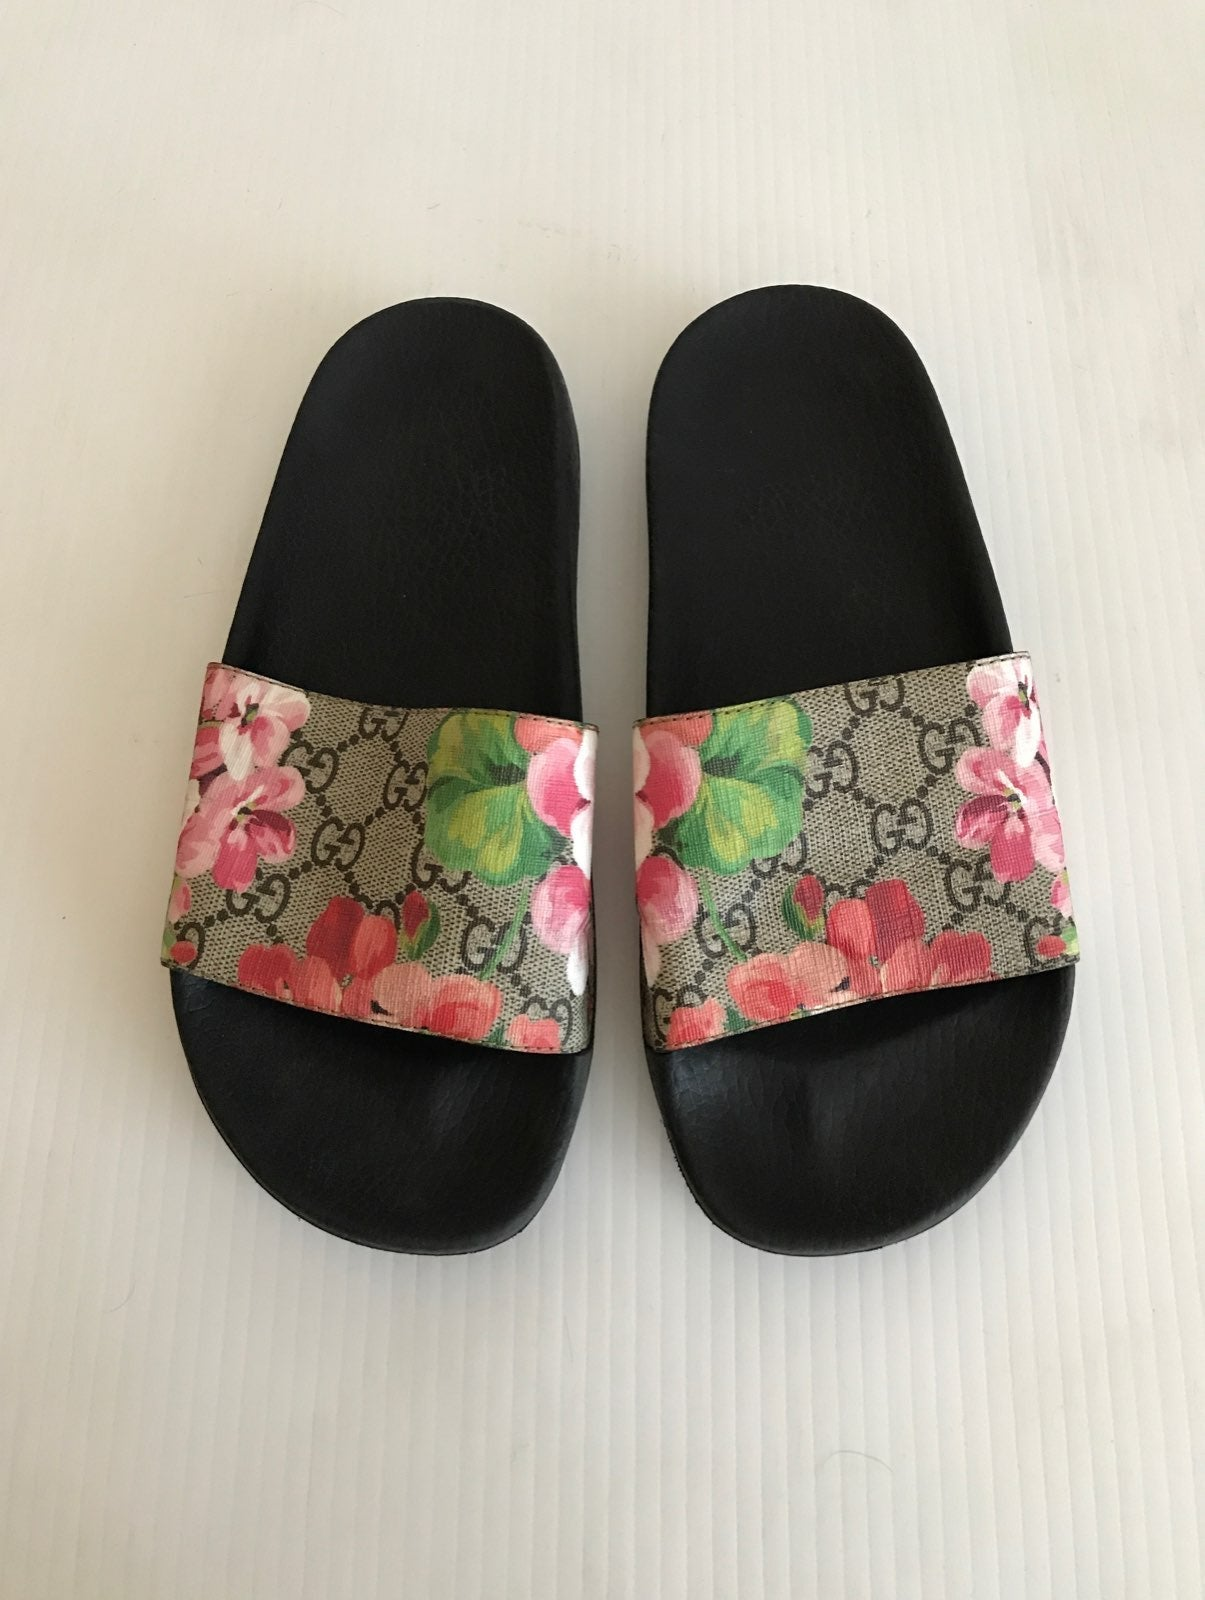 Gucci GG Bloom Pursuit Slide Sandal 37